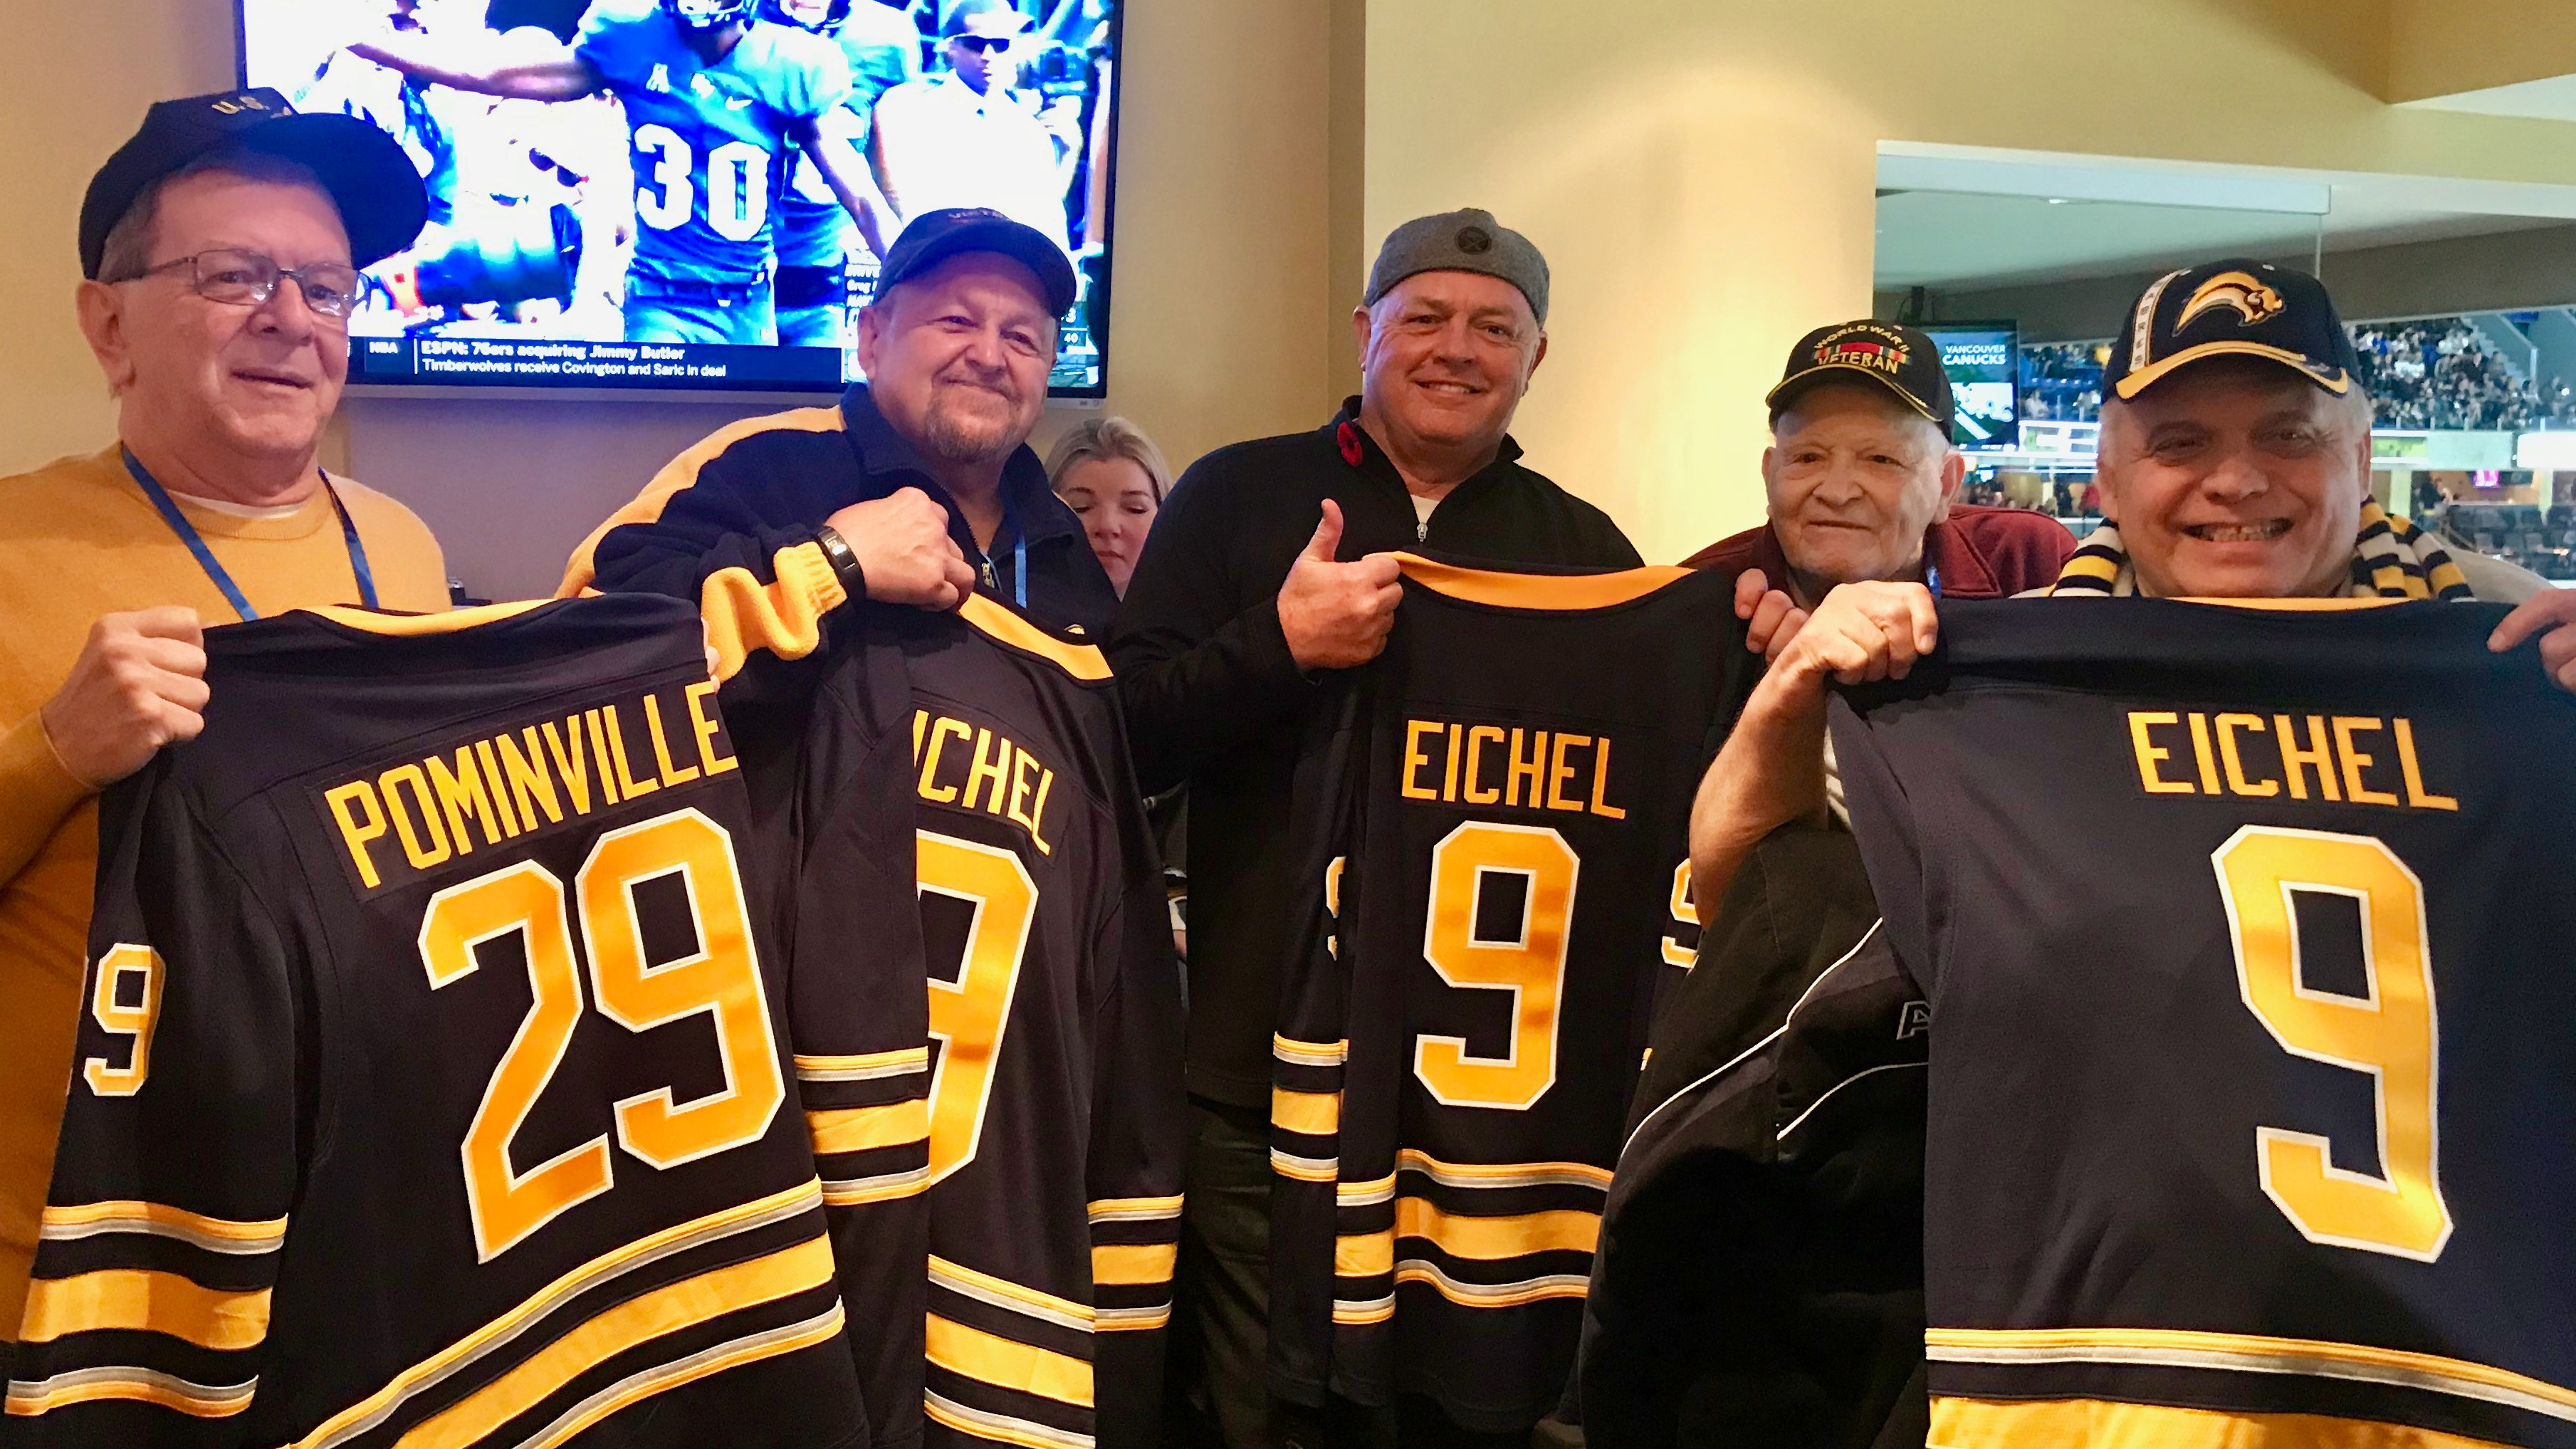 A Week of Veteran's Wishes includes a Sabres Game! Image